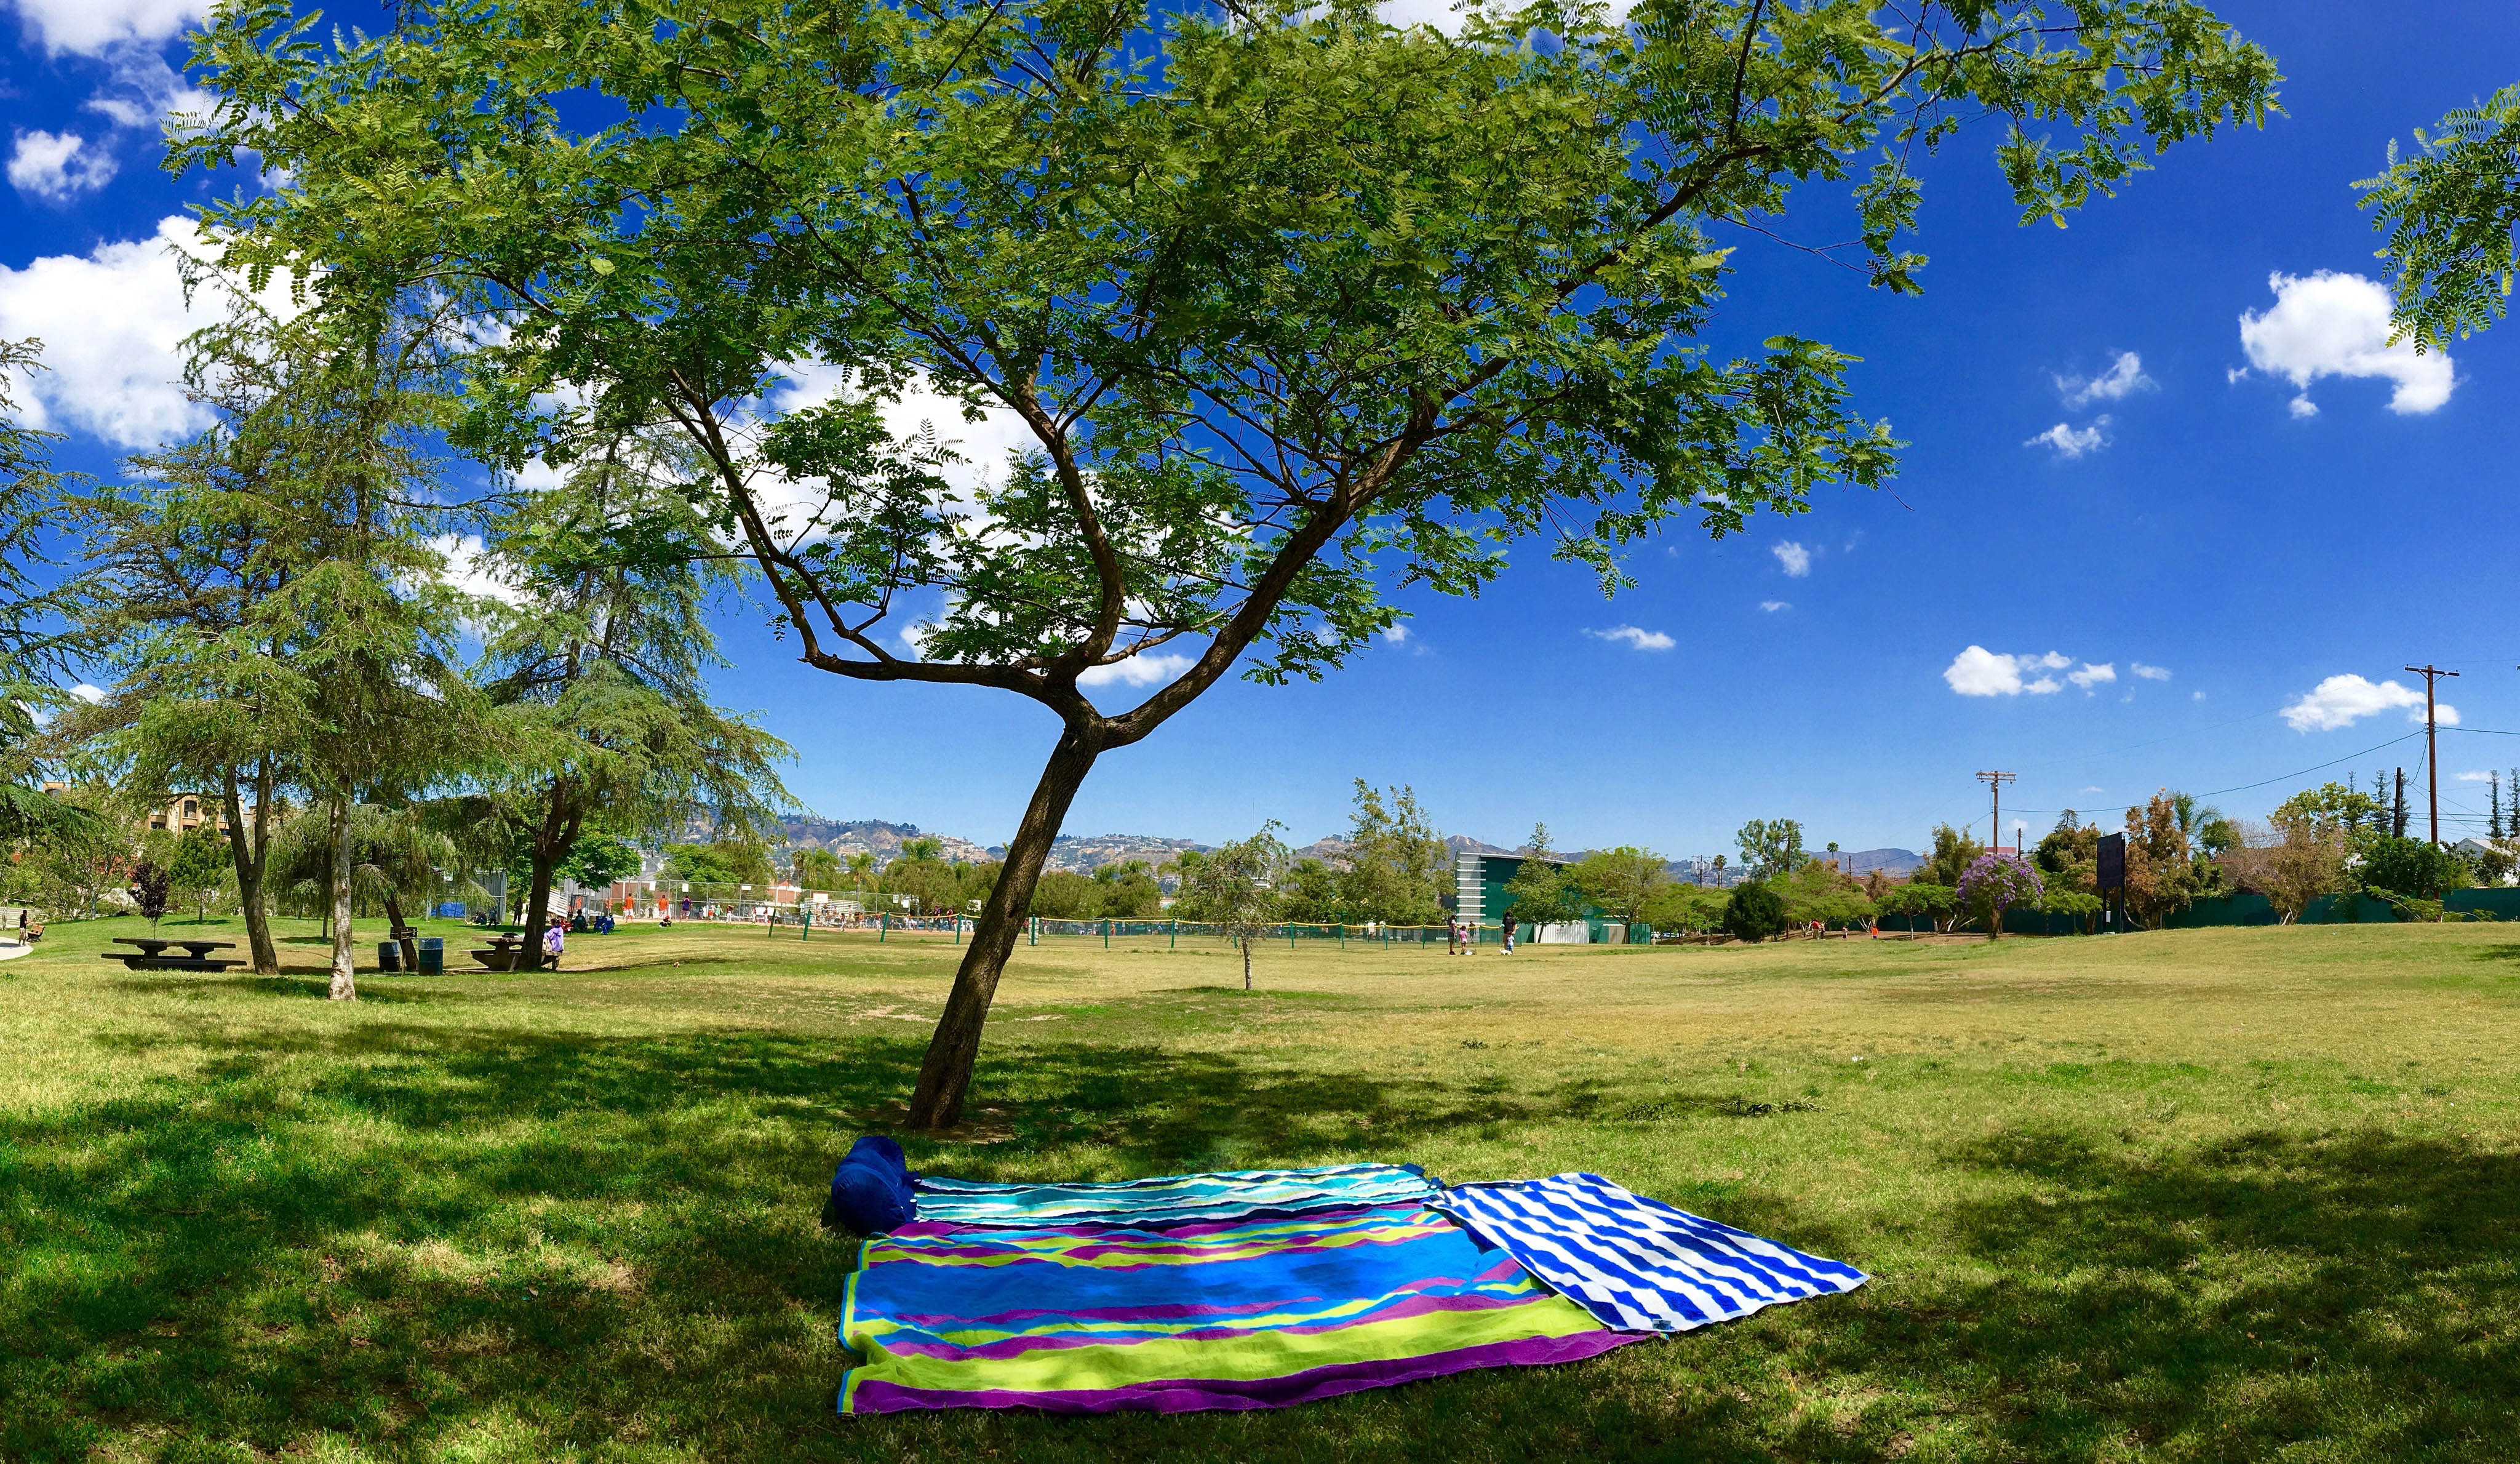 Los Angeles picnic spots: 20 of the best places to lay out a